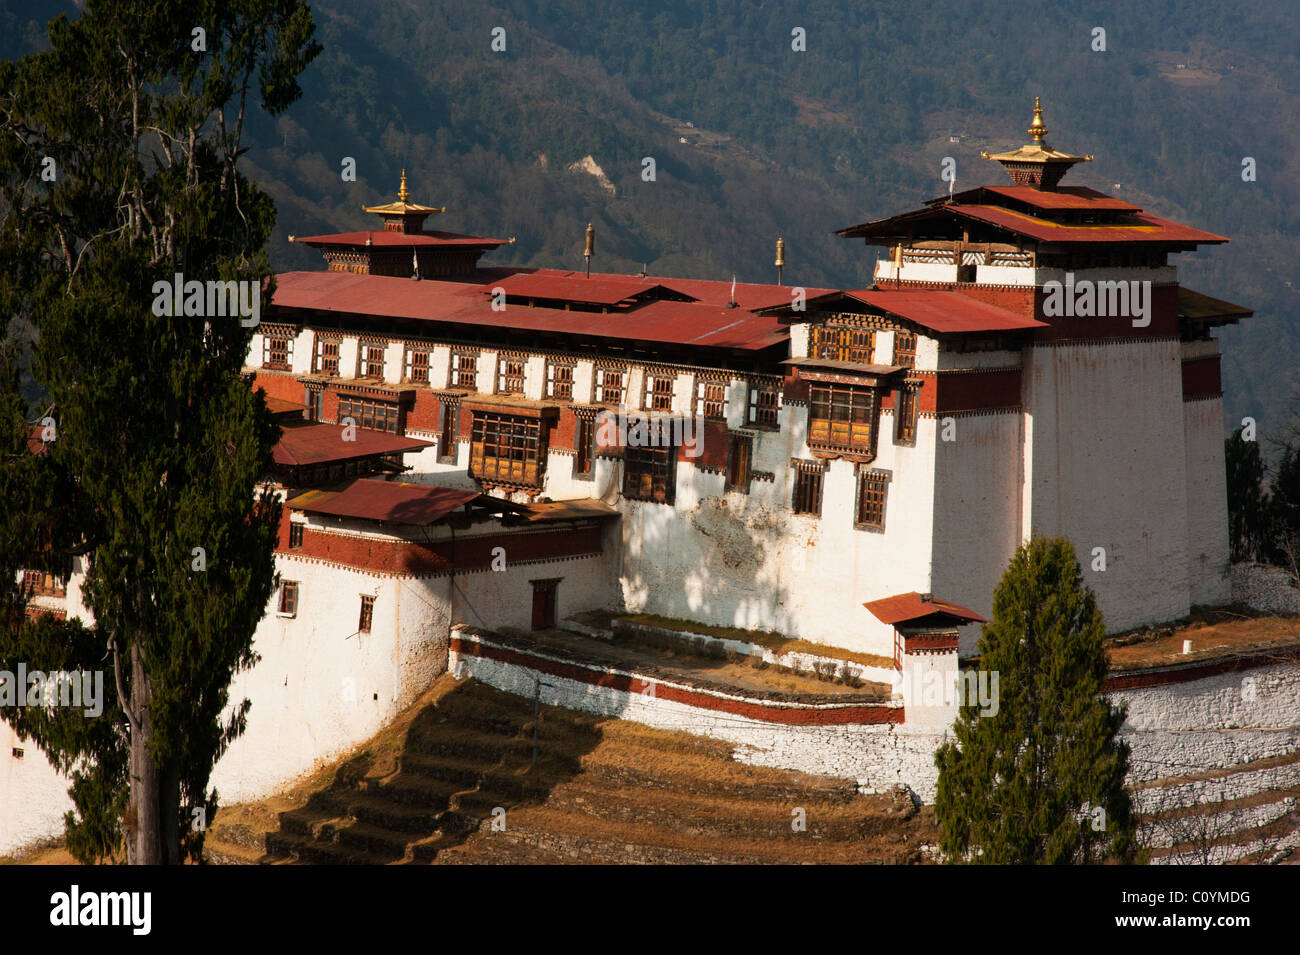 View of the Trongsa dzong in Central Bhutan - Stock Image